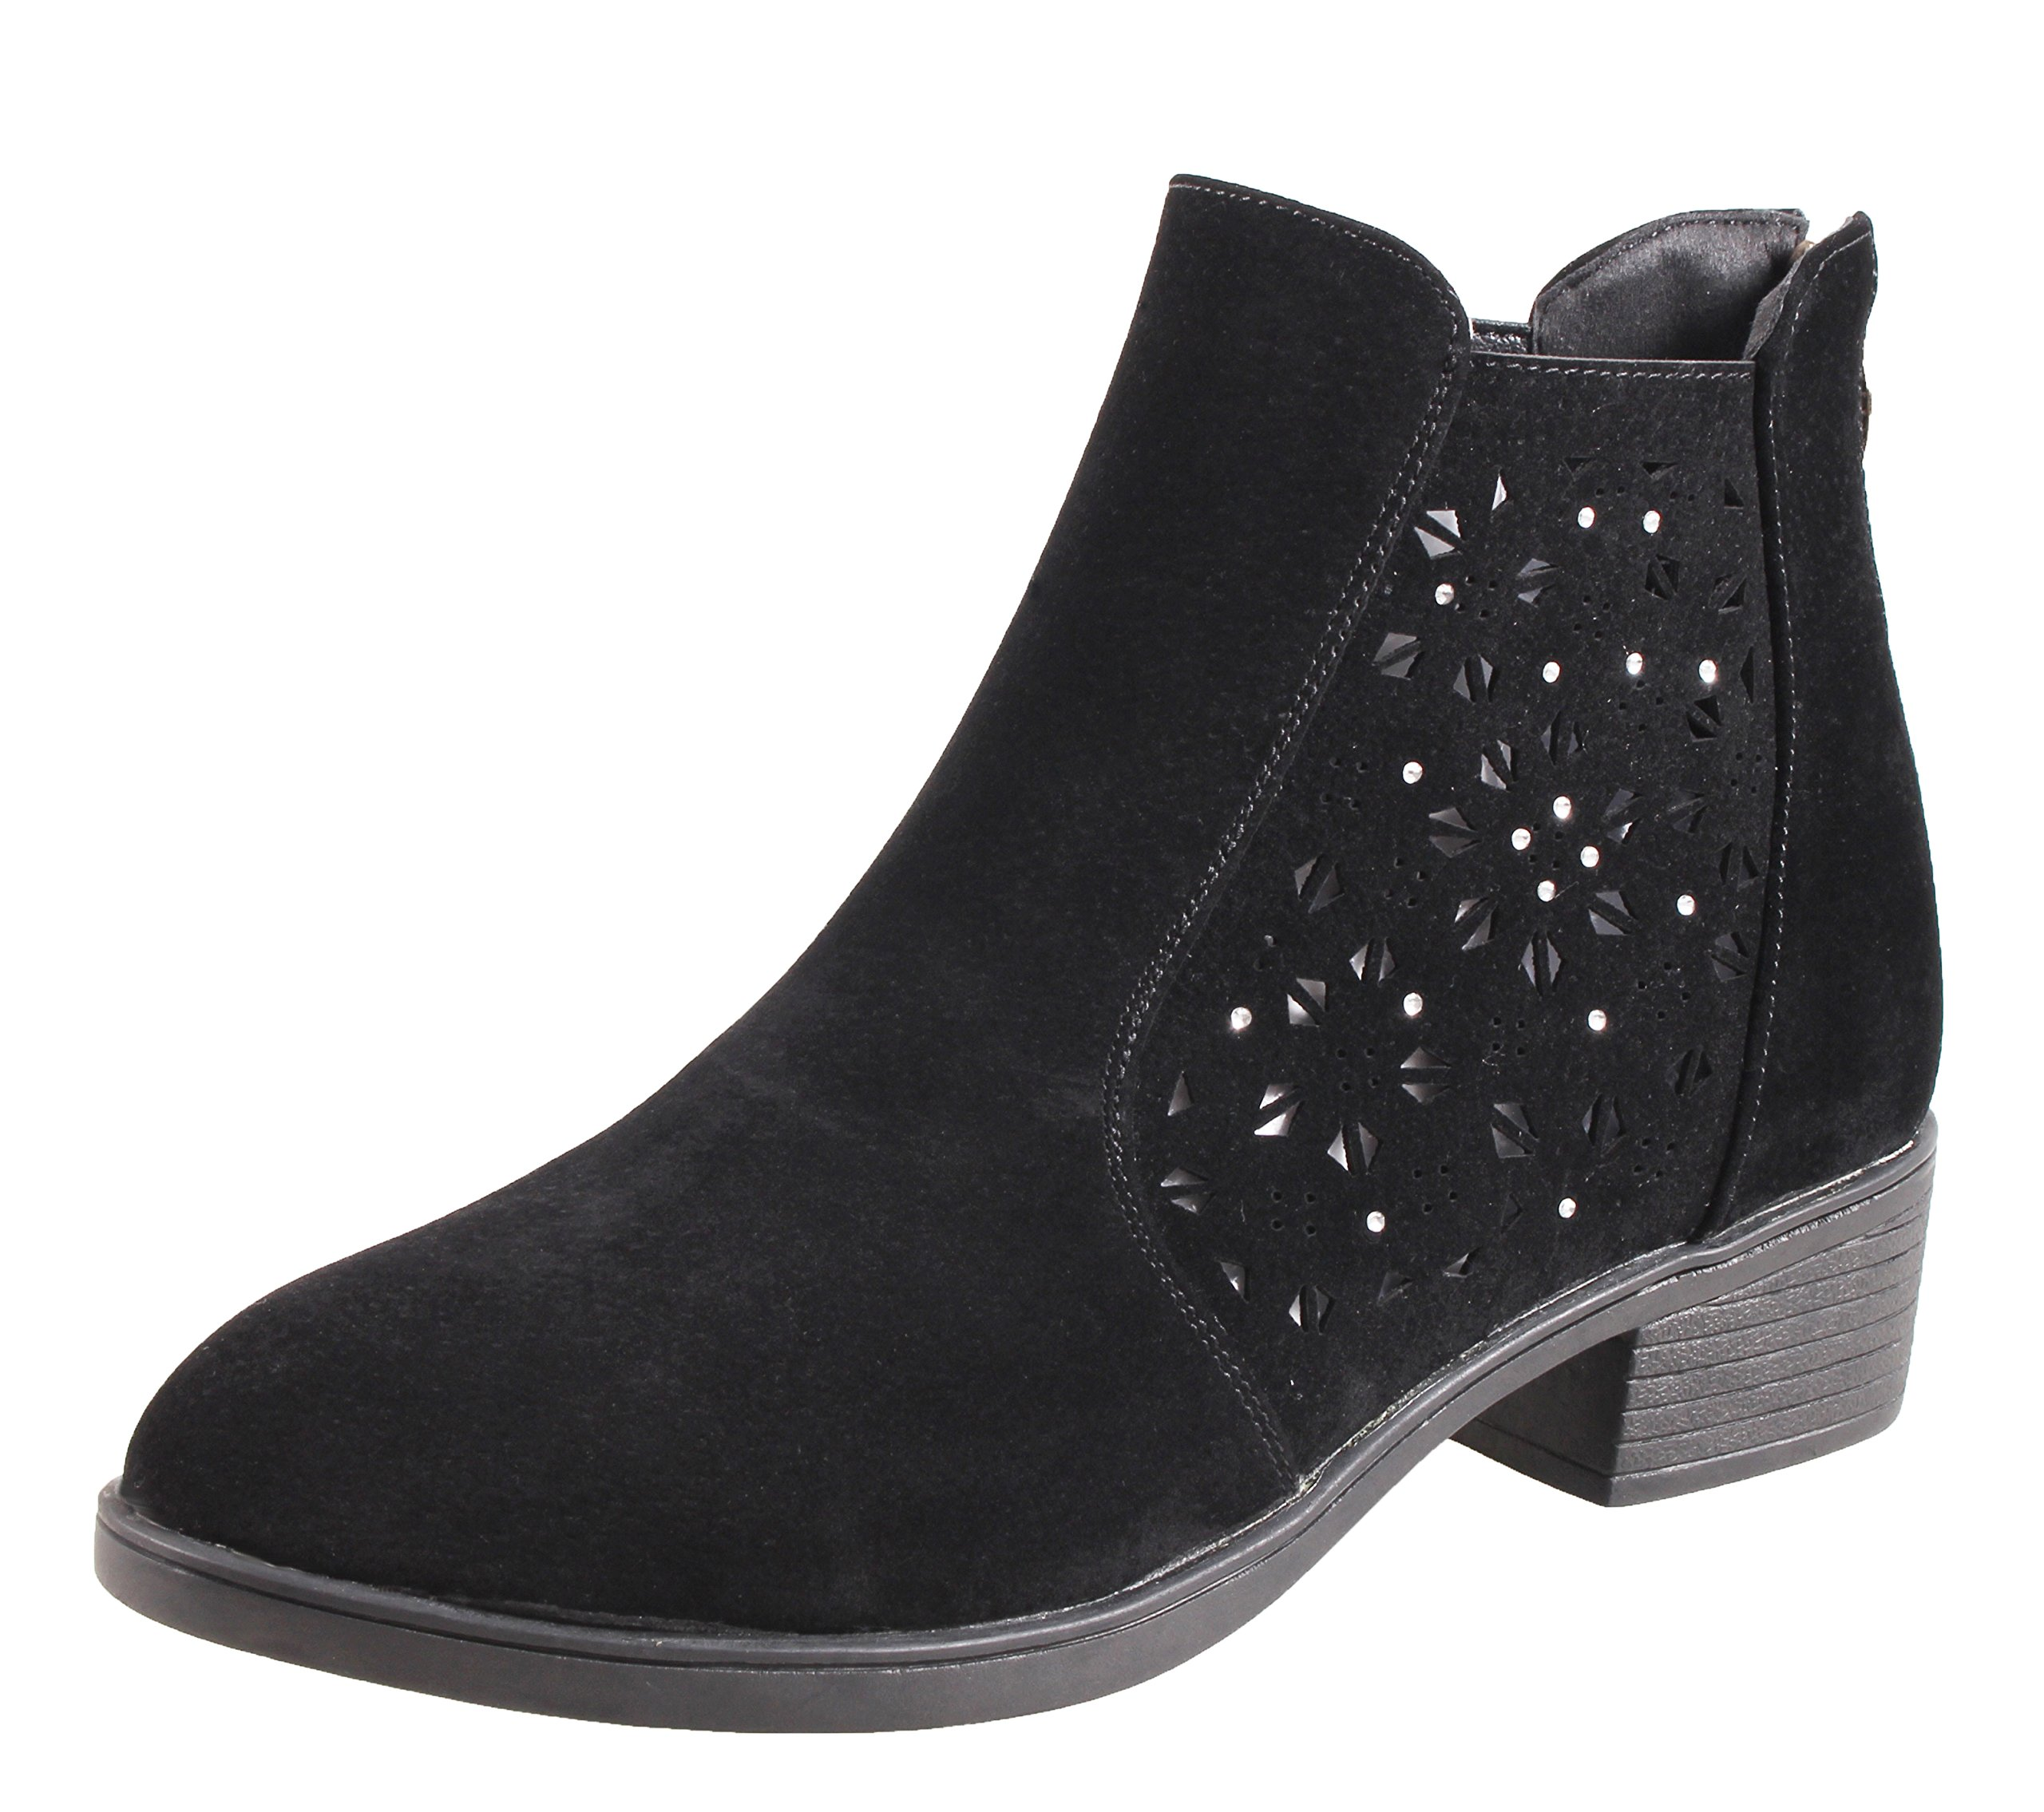 QHamThim Girl's Suede Ankle Boots Casual Outdoor Low Heel Closed Toe Bootie